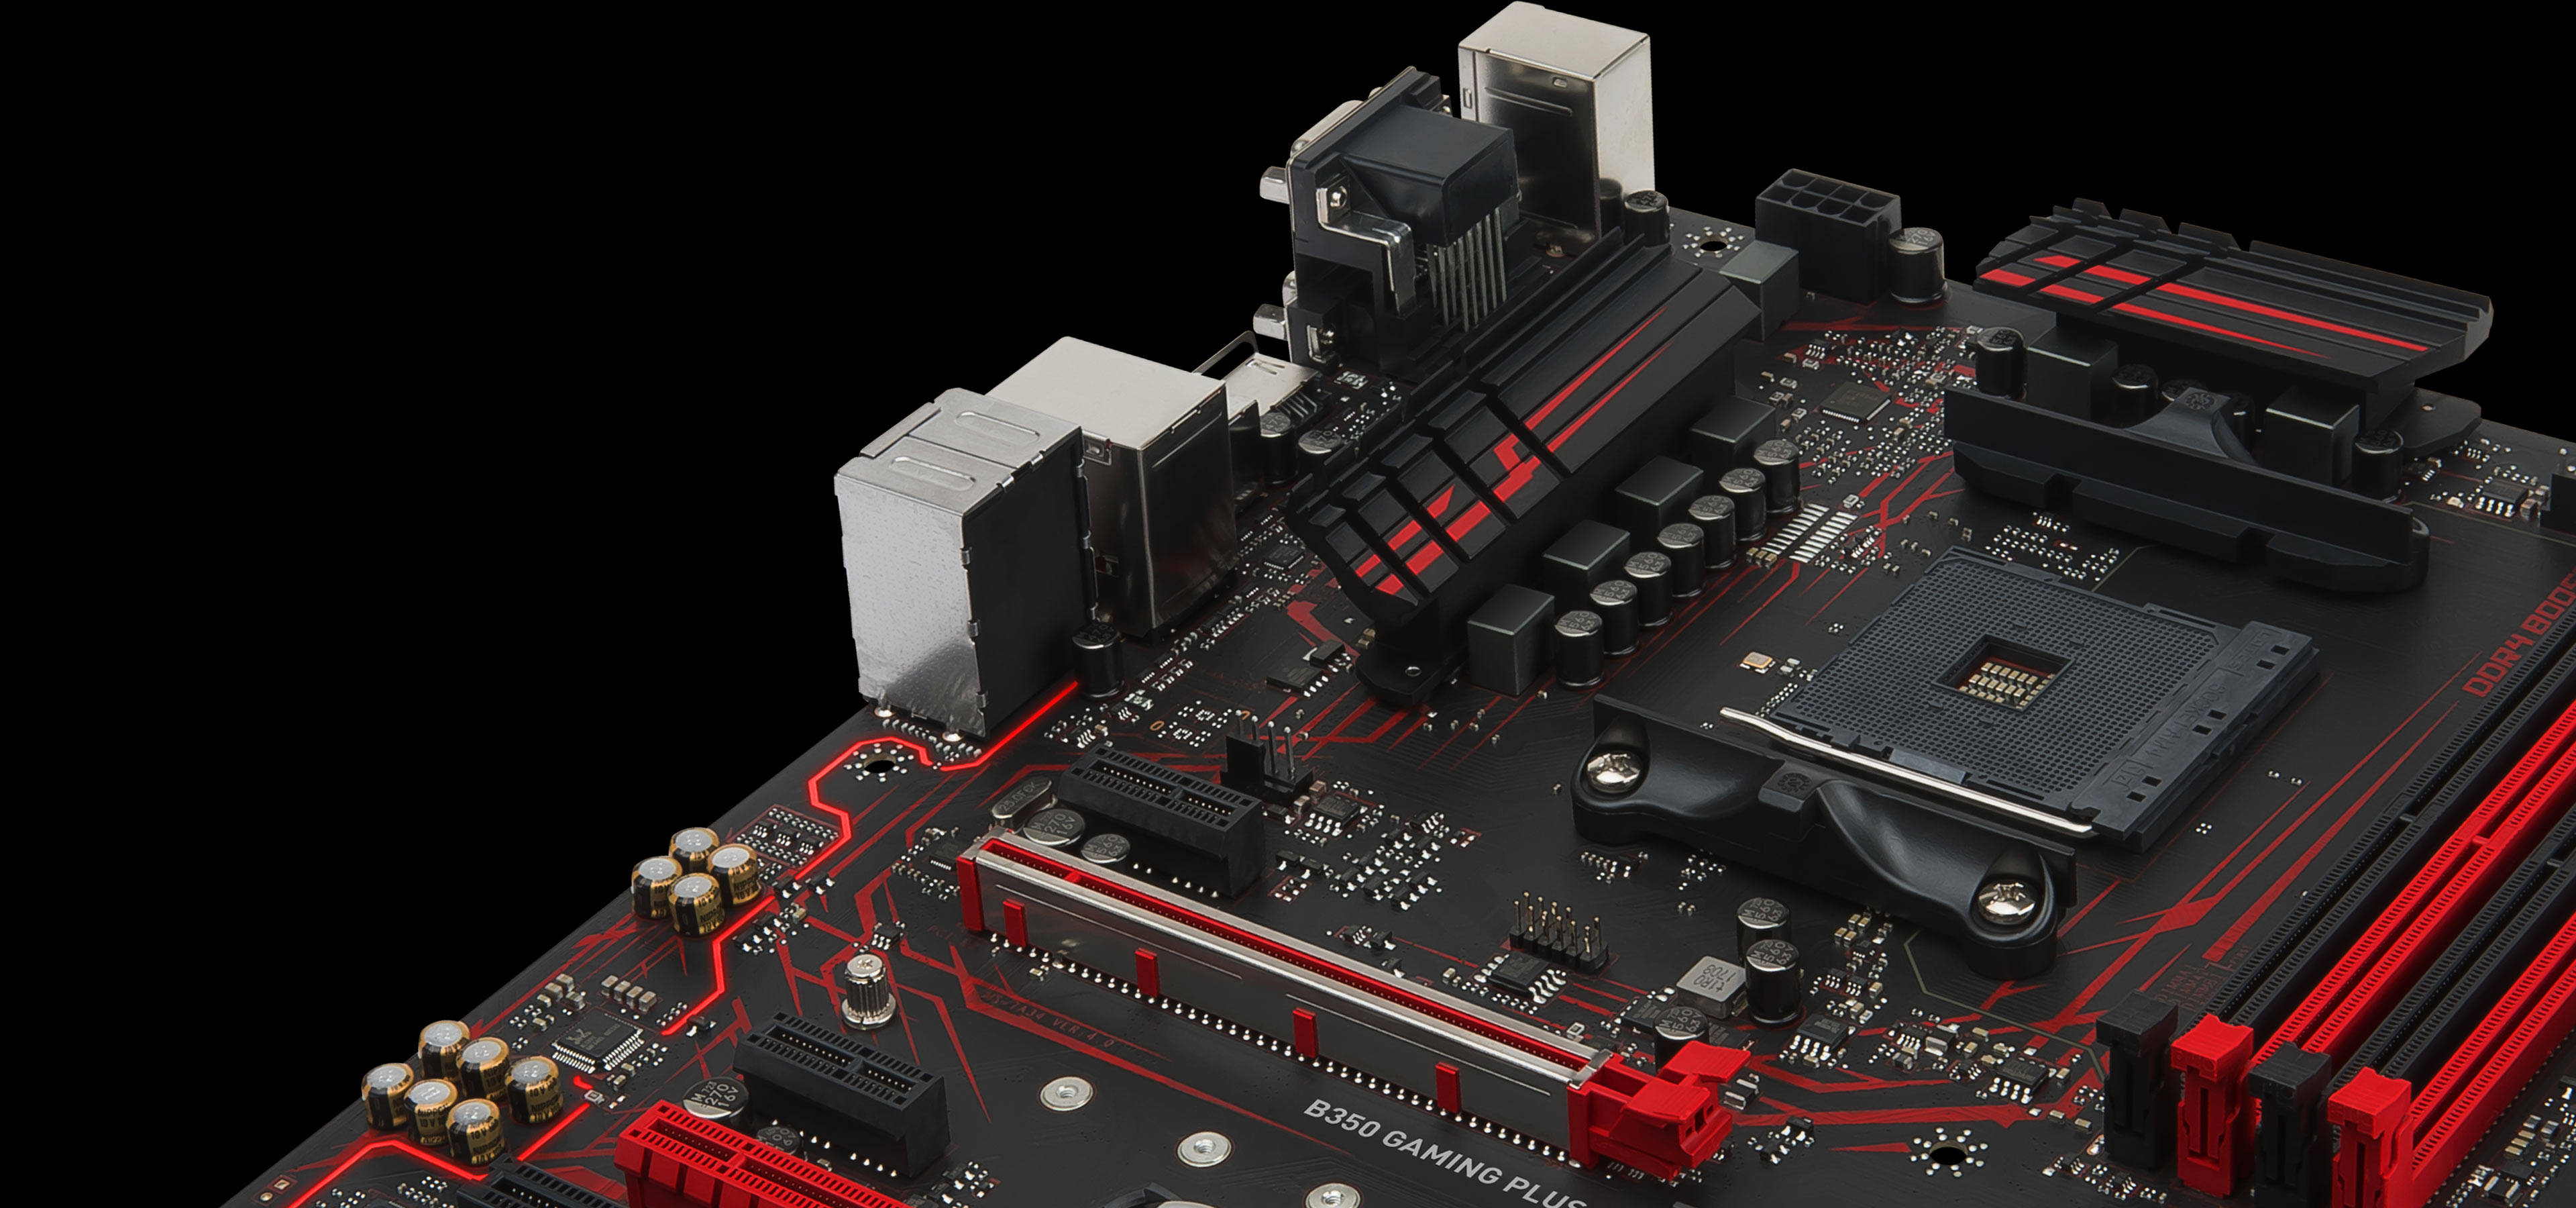 B350 GAMING PLUS | Motherboard - The world leader in